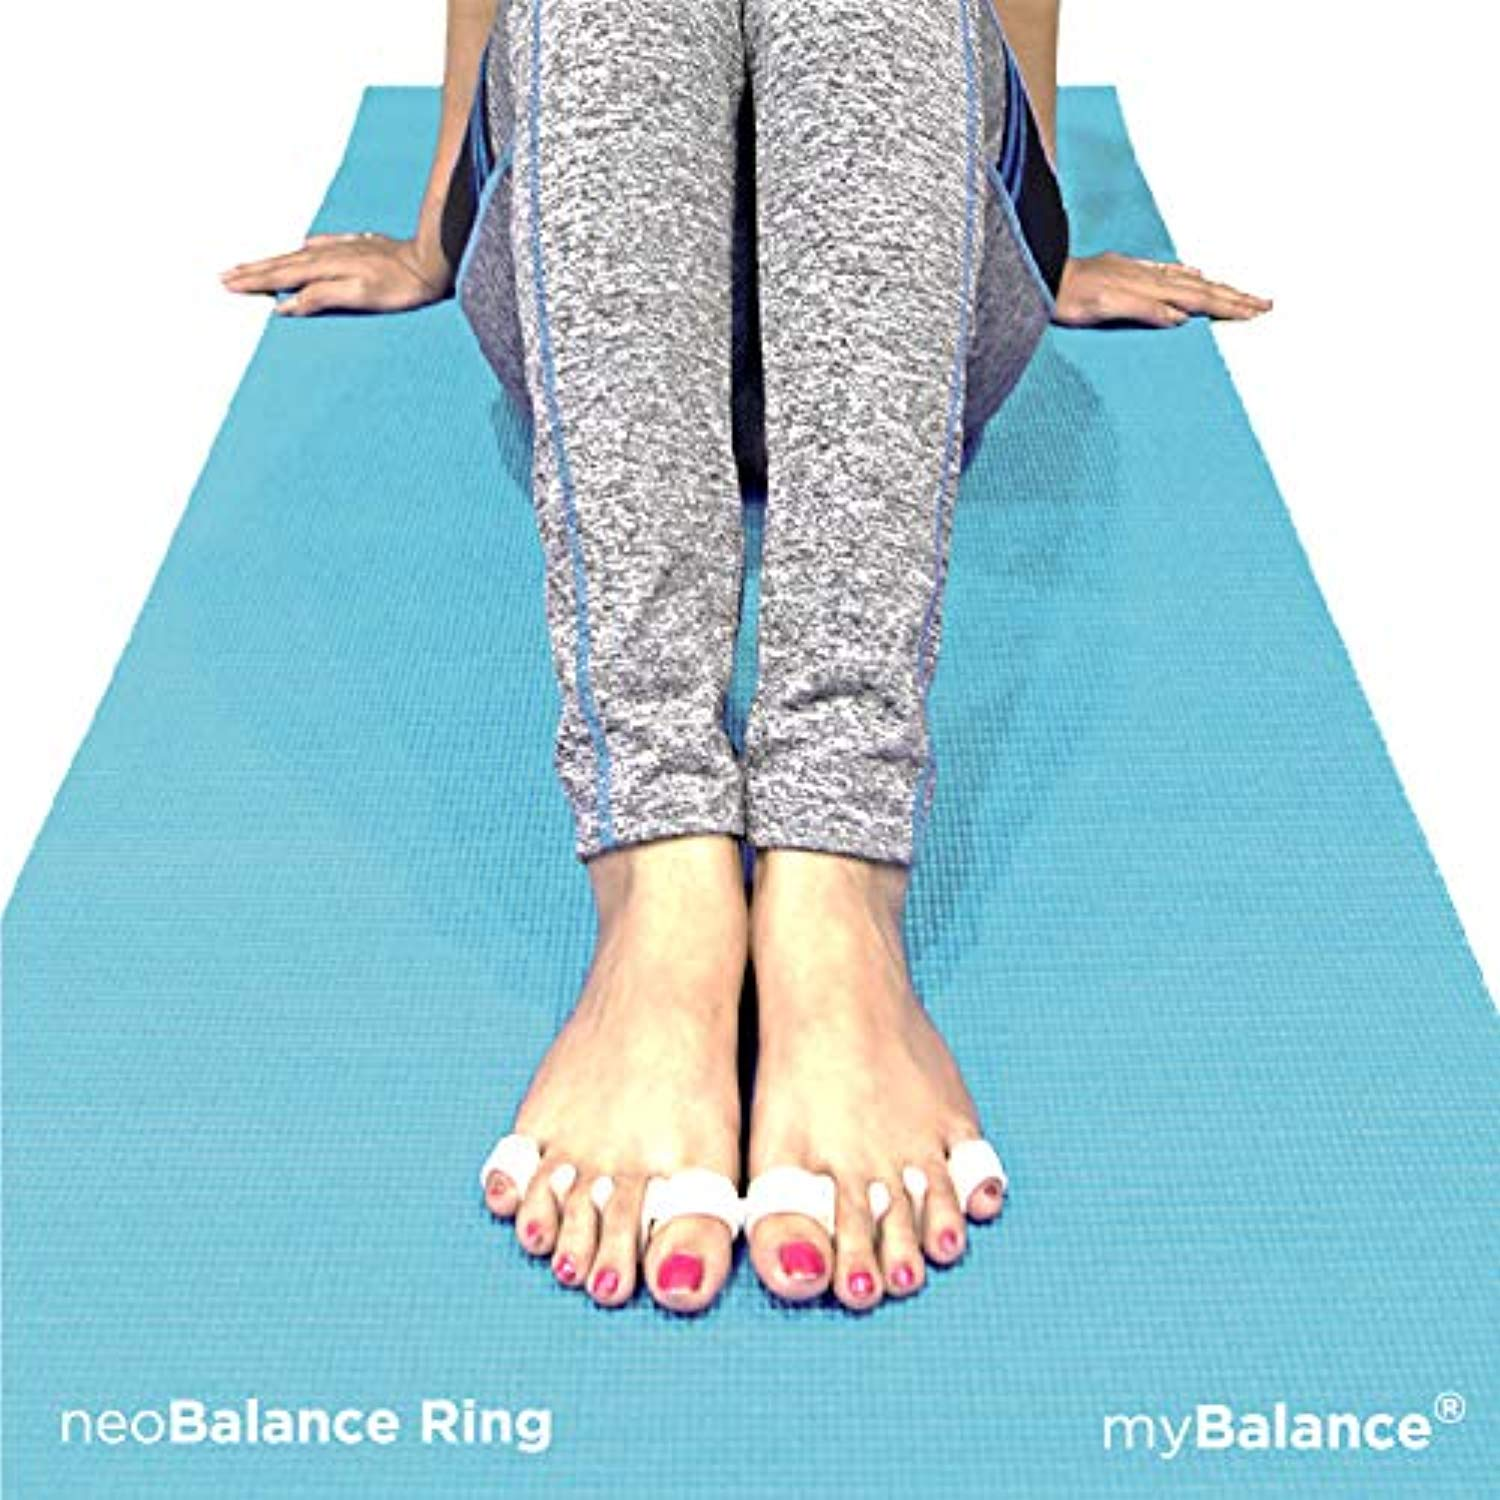 Balance Ring Toe Stretcher & Toe Separator